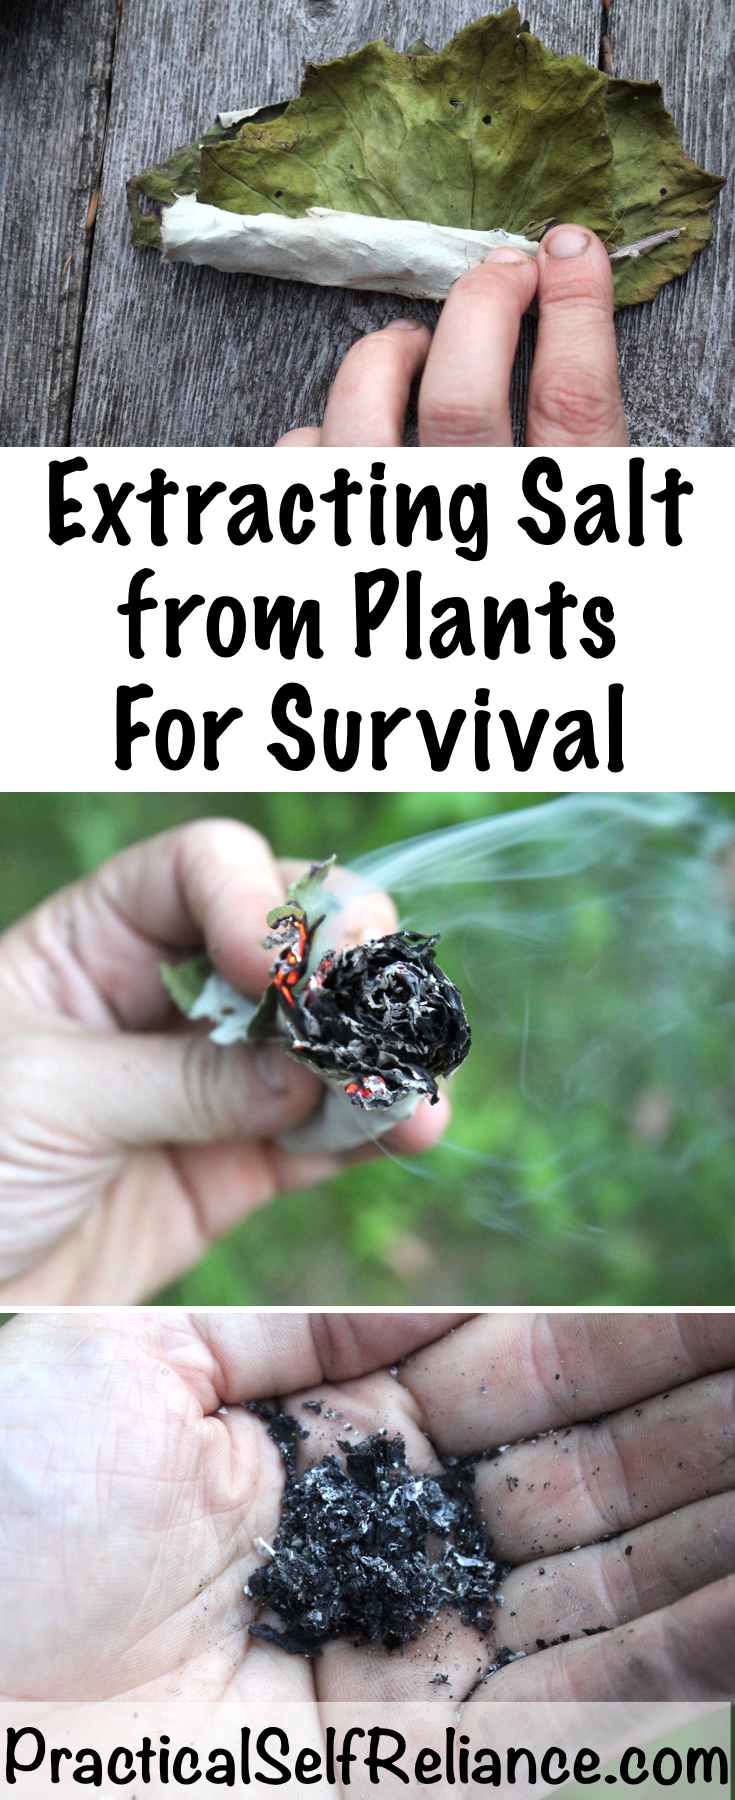 Extracting Salt from Plants for Survival